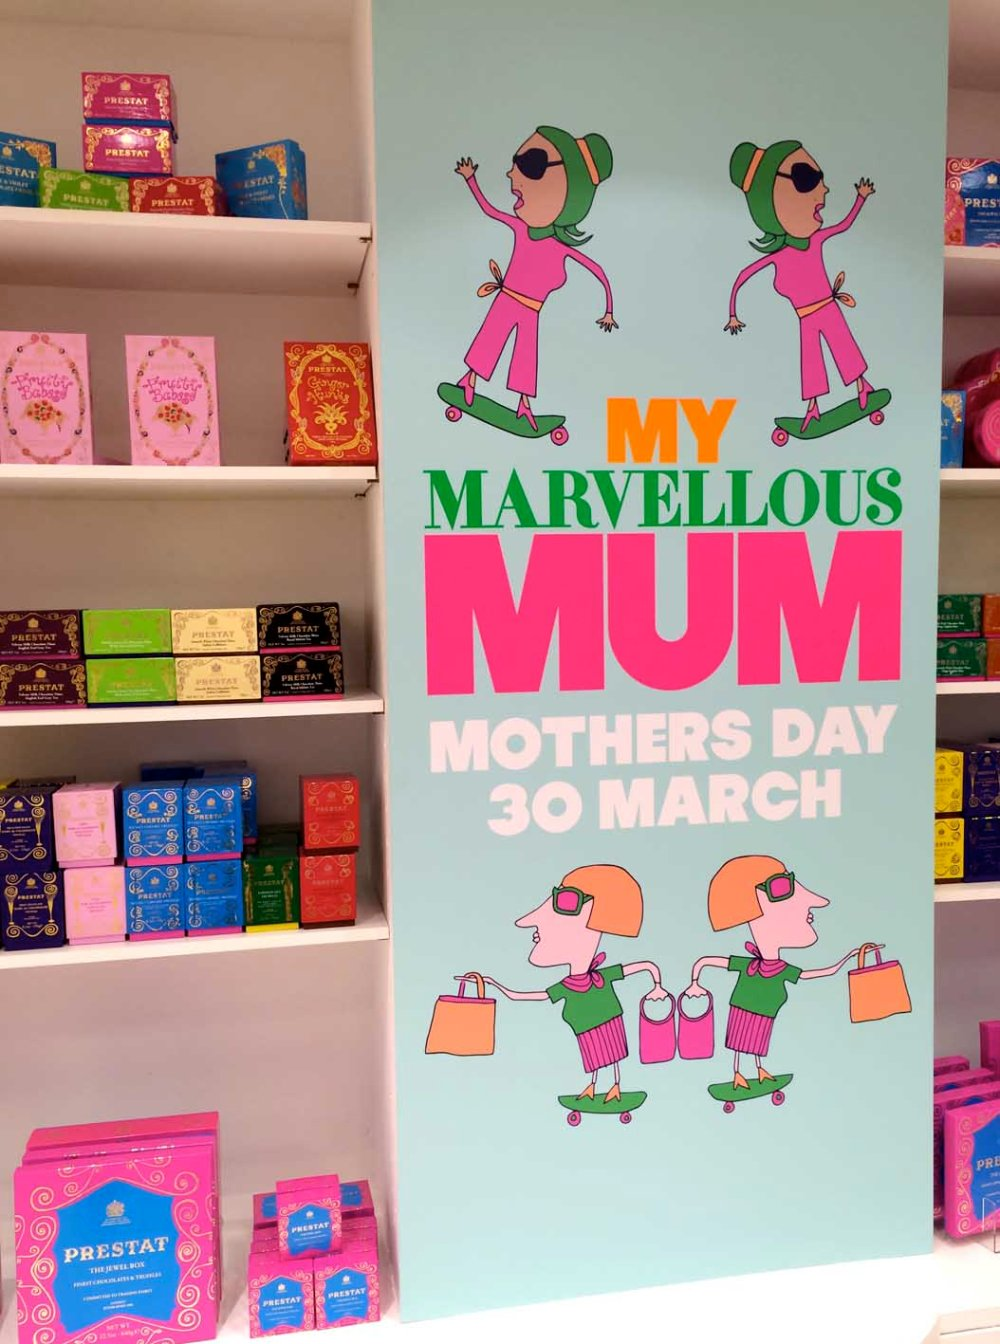 SELFRIDGES__Mothers_Day_2014_1